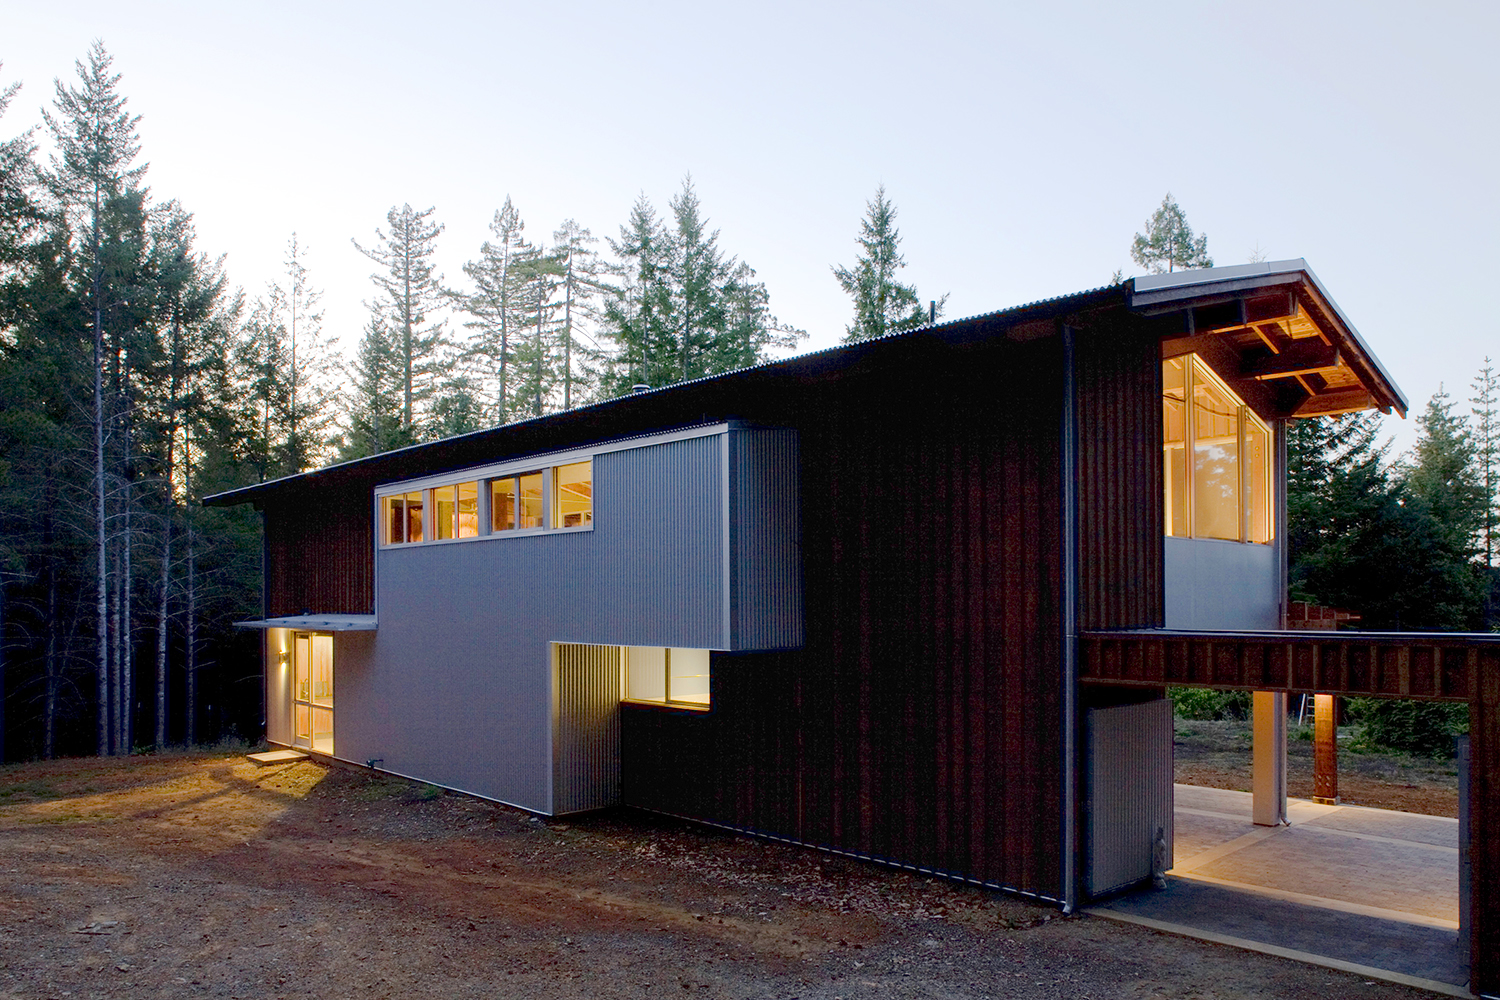 21_Projects_House for Two Artists.jpg